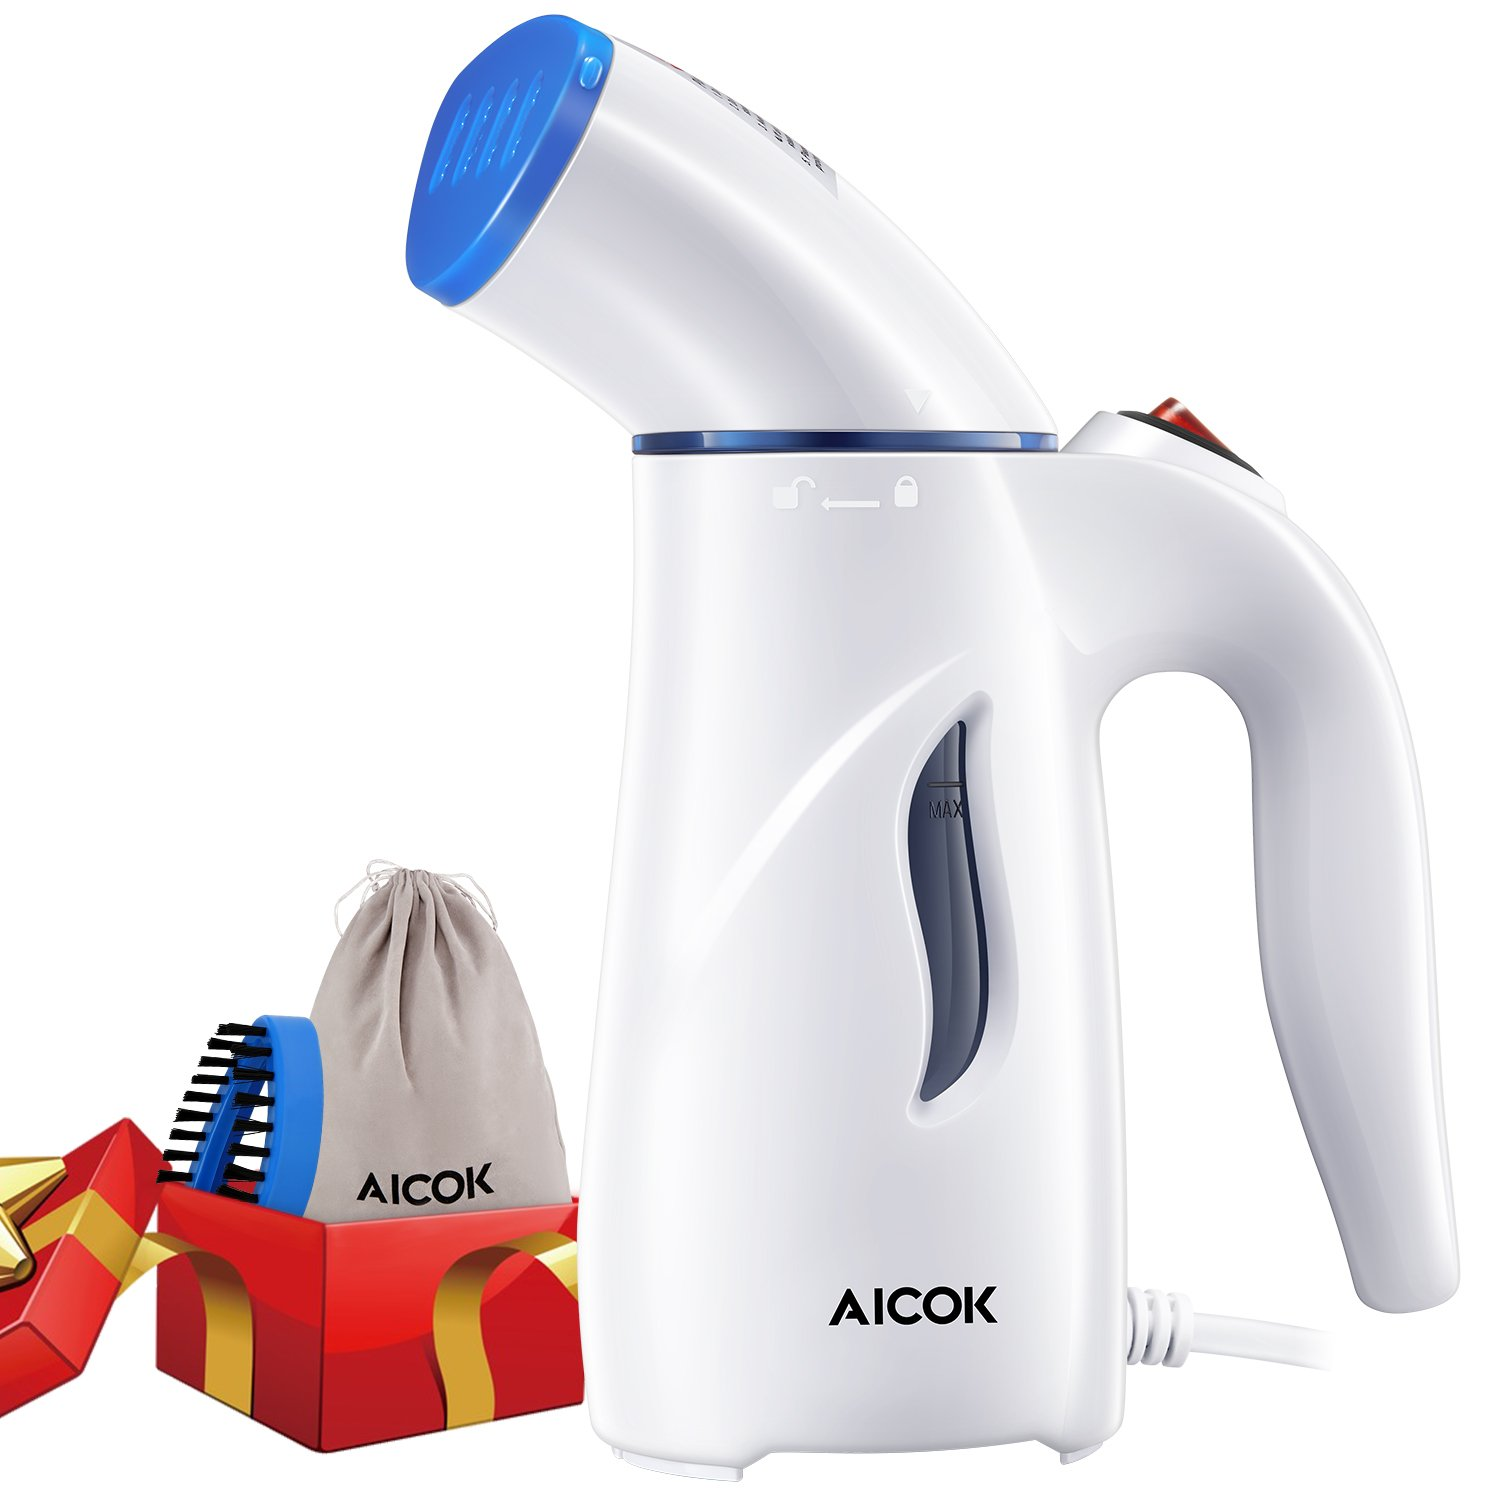 Clothes Steamer, Aicok Handheld Garment Steamers for Clothes with Fabric Brush & Bag, Fast Heating Portable Travel Steamer, Perfect for Ironing, Cleaning, Sterilization and Fabric Soften